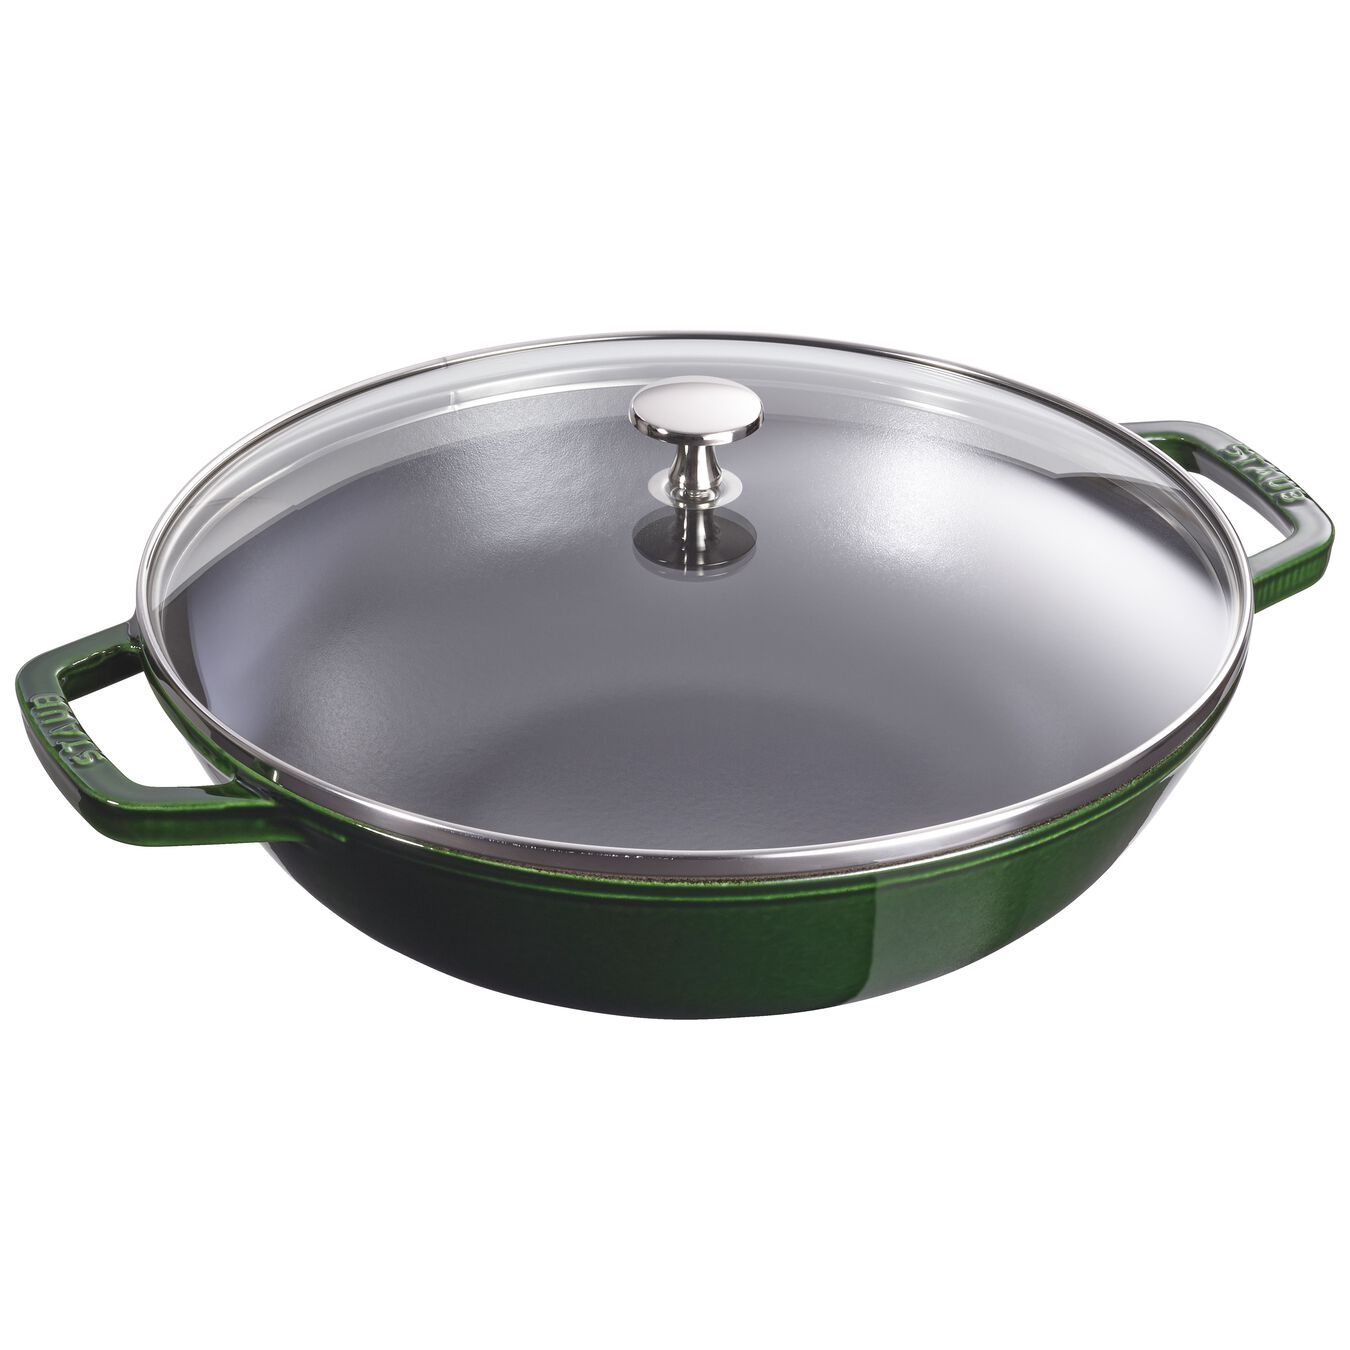 30 cm / 12 inch Wok with glass lid, basil-green,,large 1